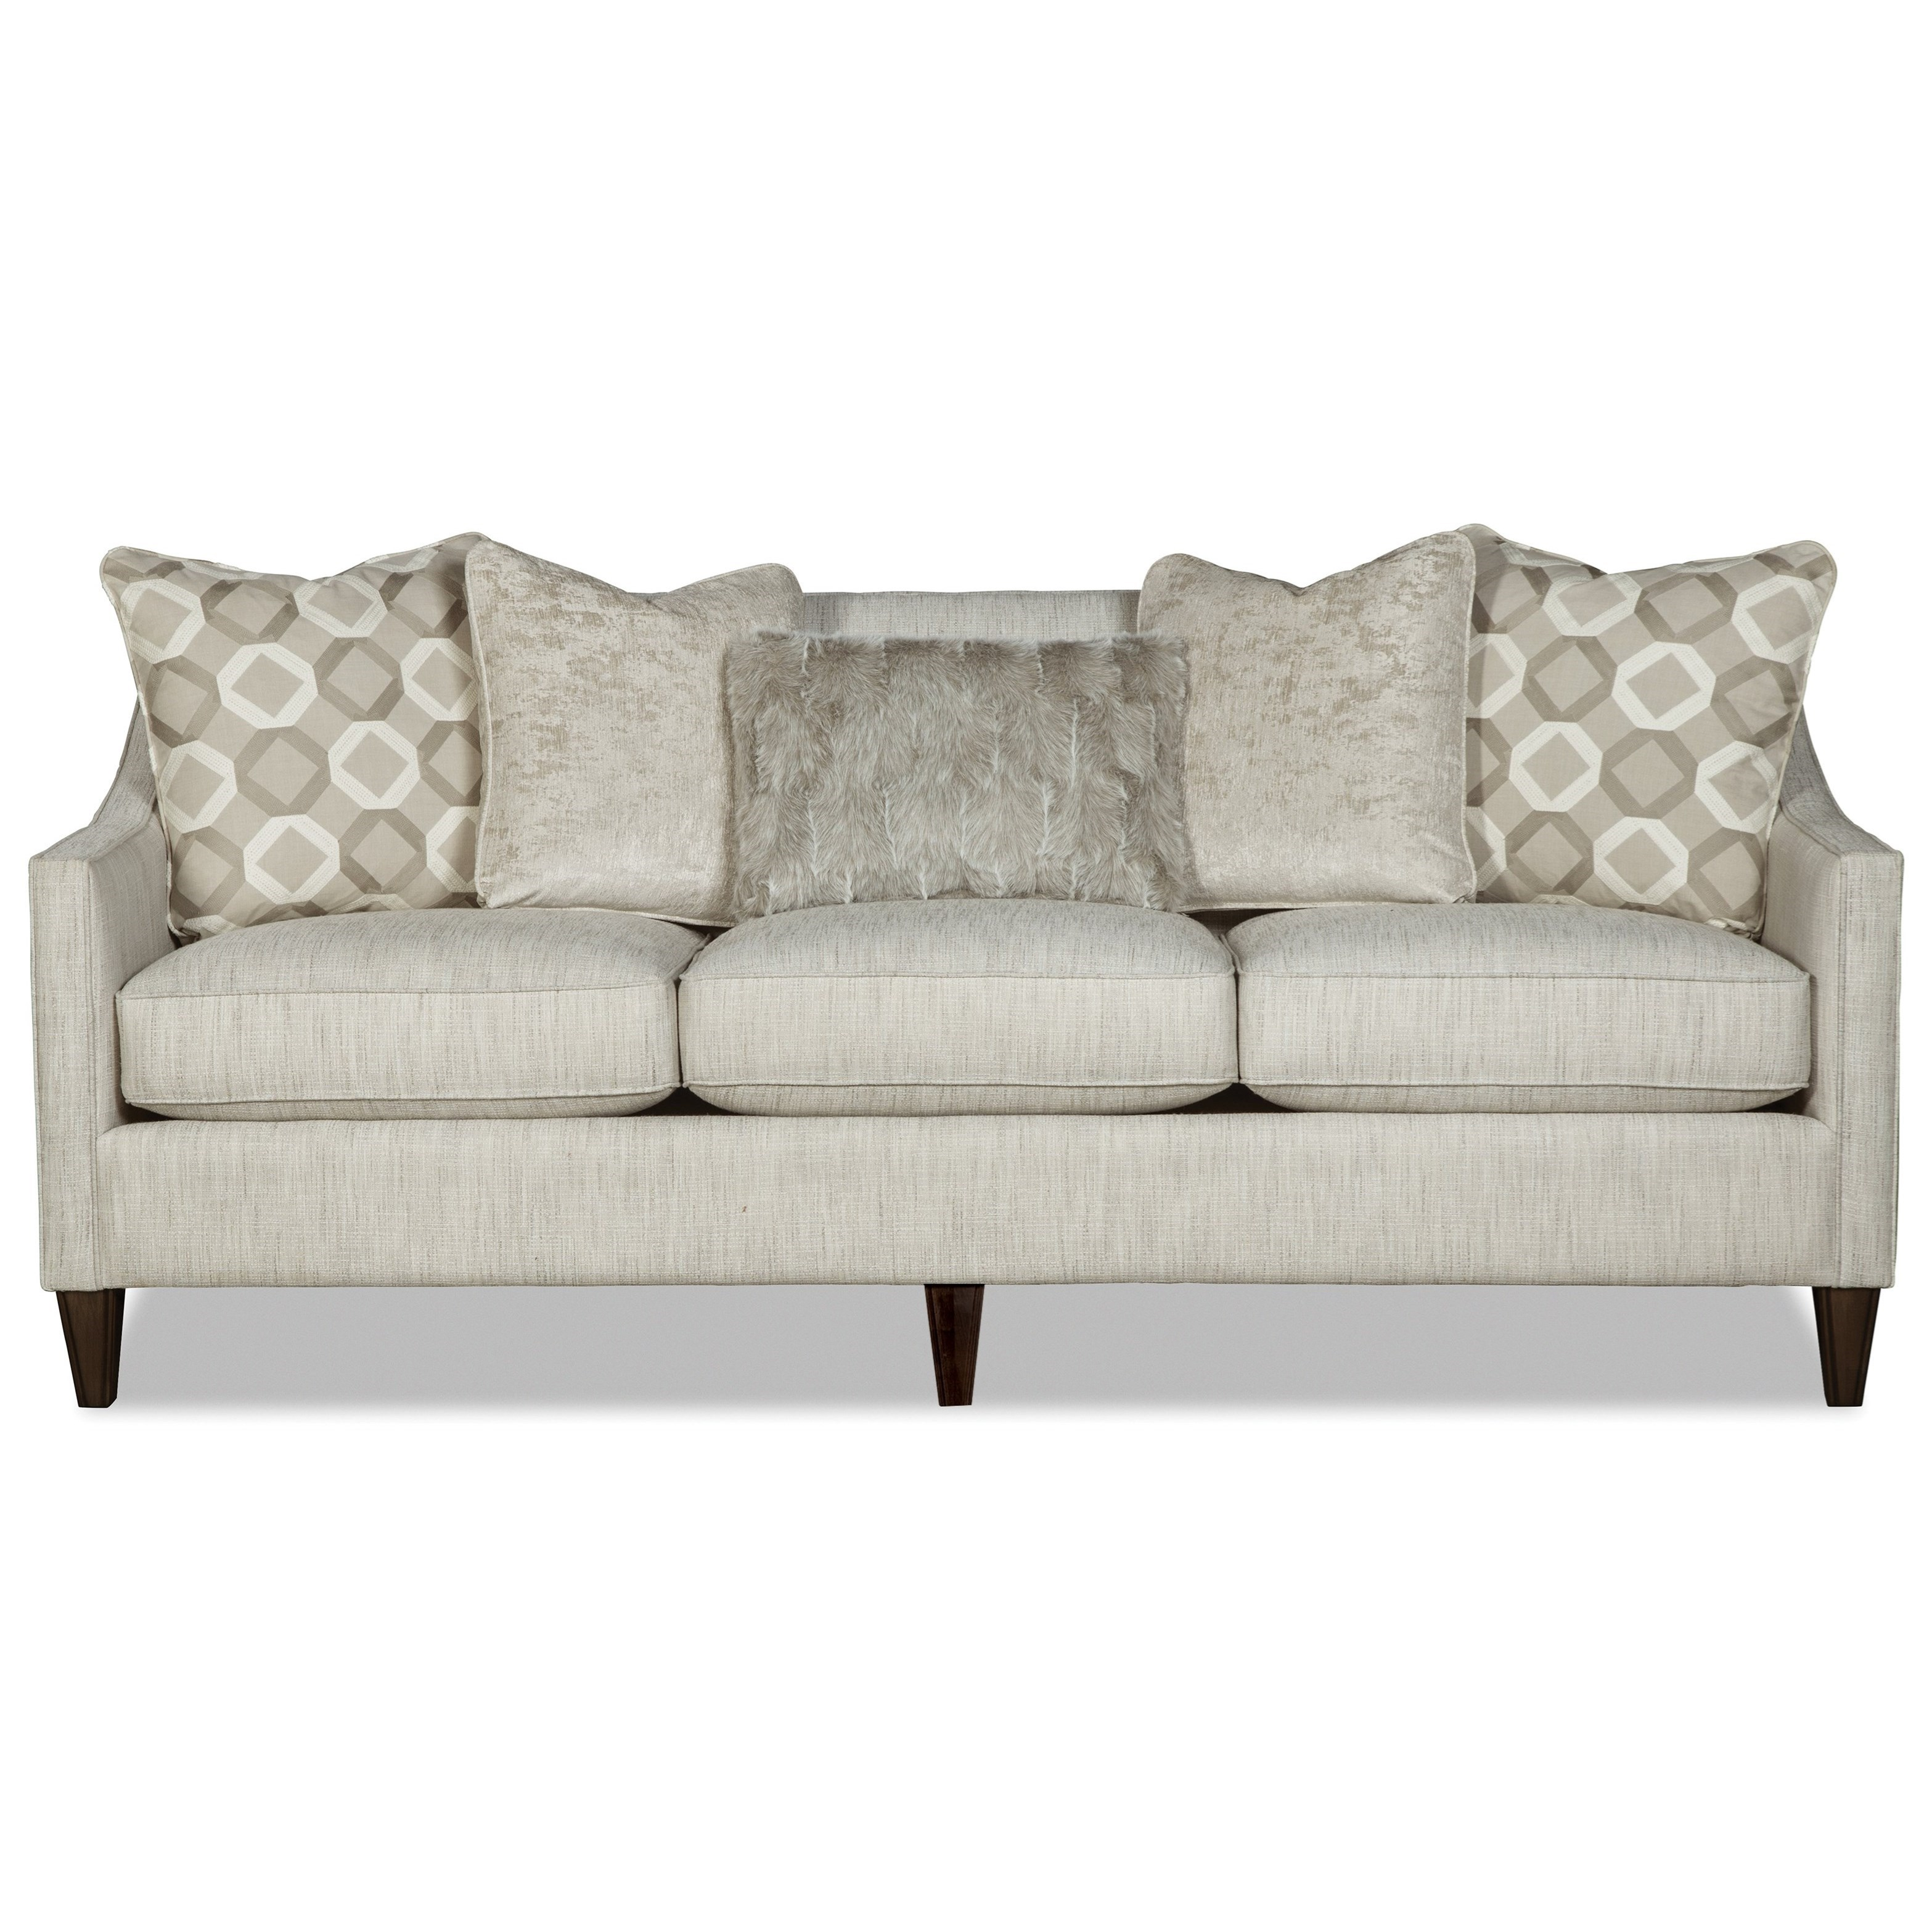 703850 Sofa by Craftmaster at Bullard Furniture